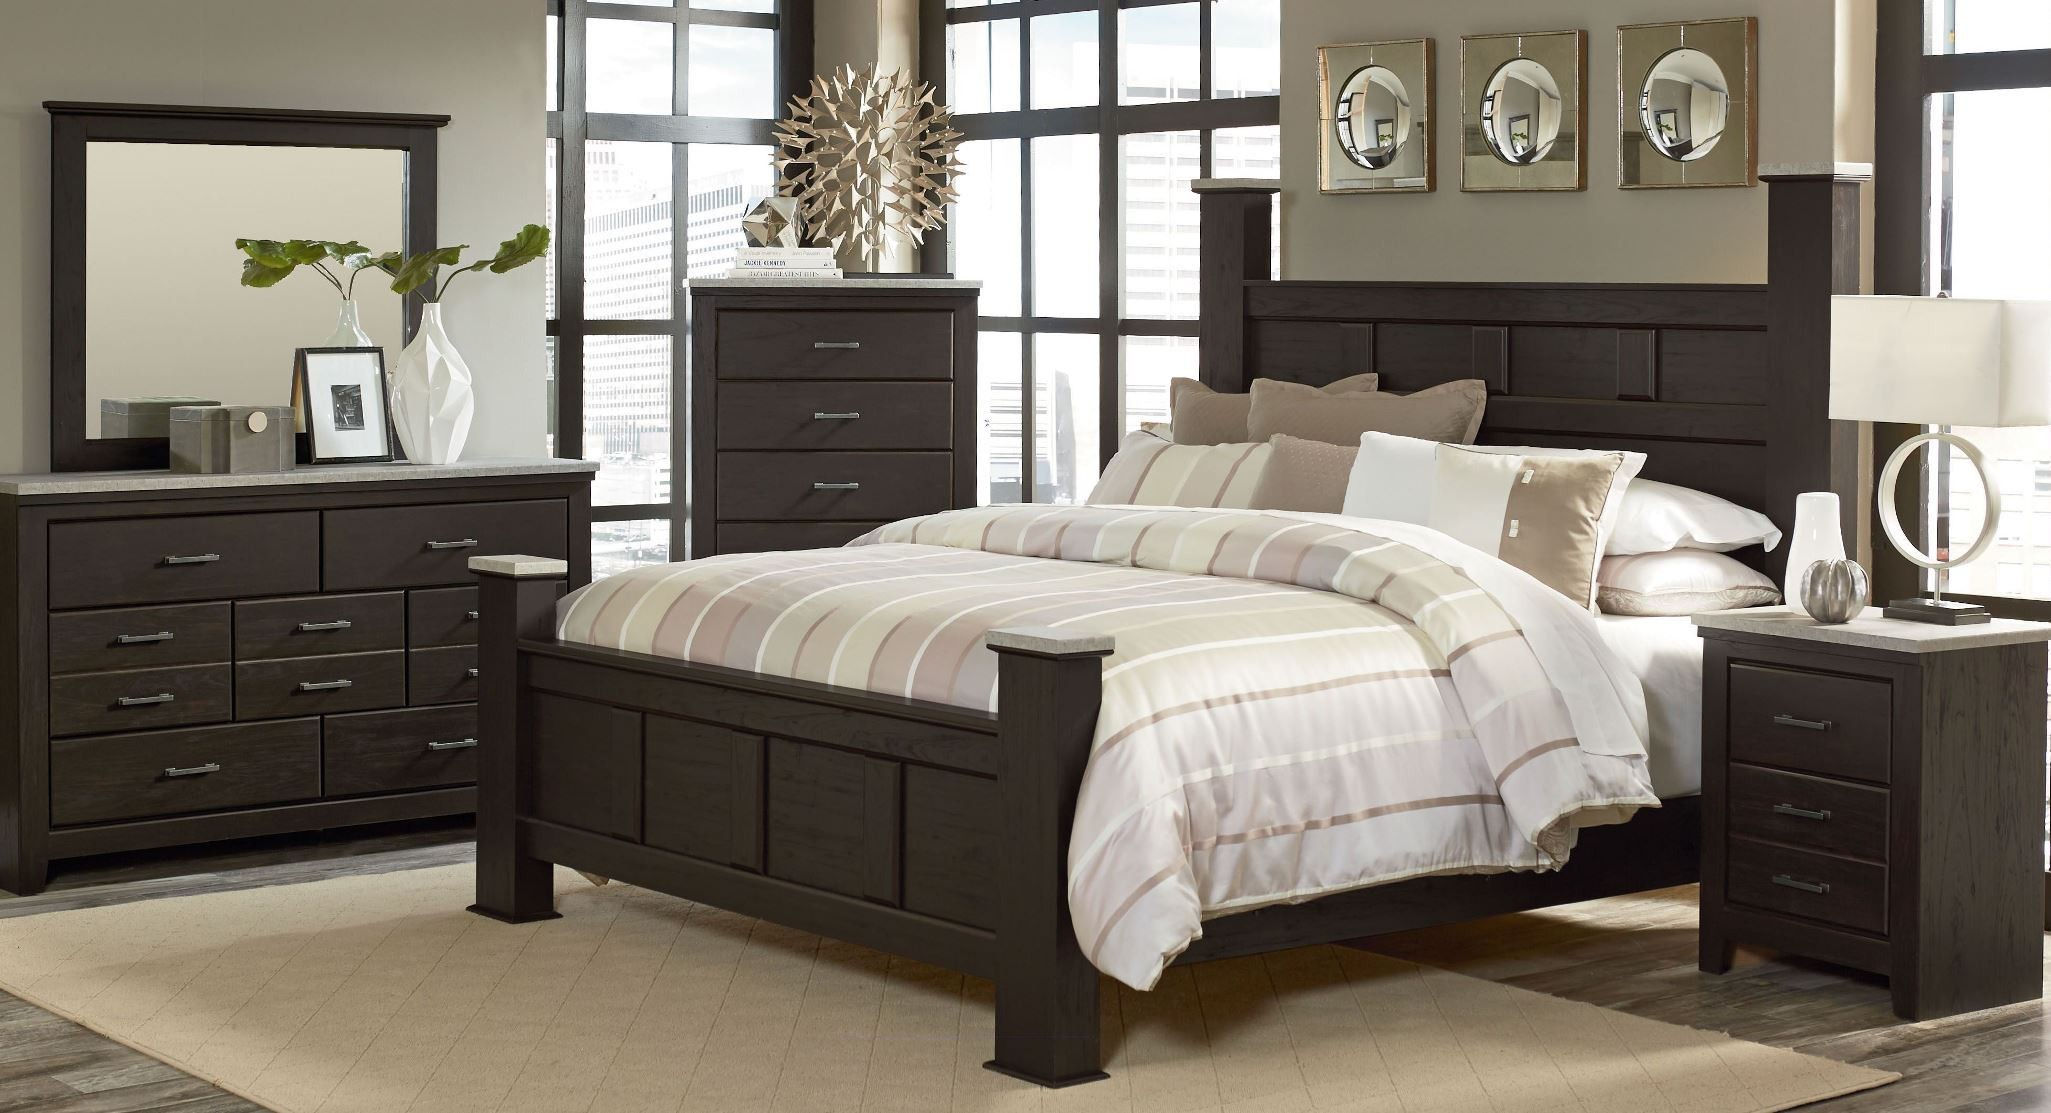 stonehill dark brown pecan poster bedroom set 693 52 60 62 2069352